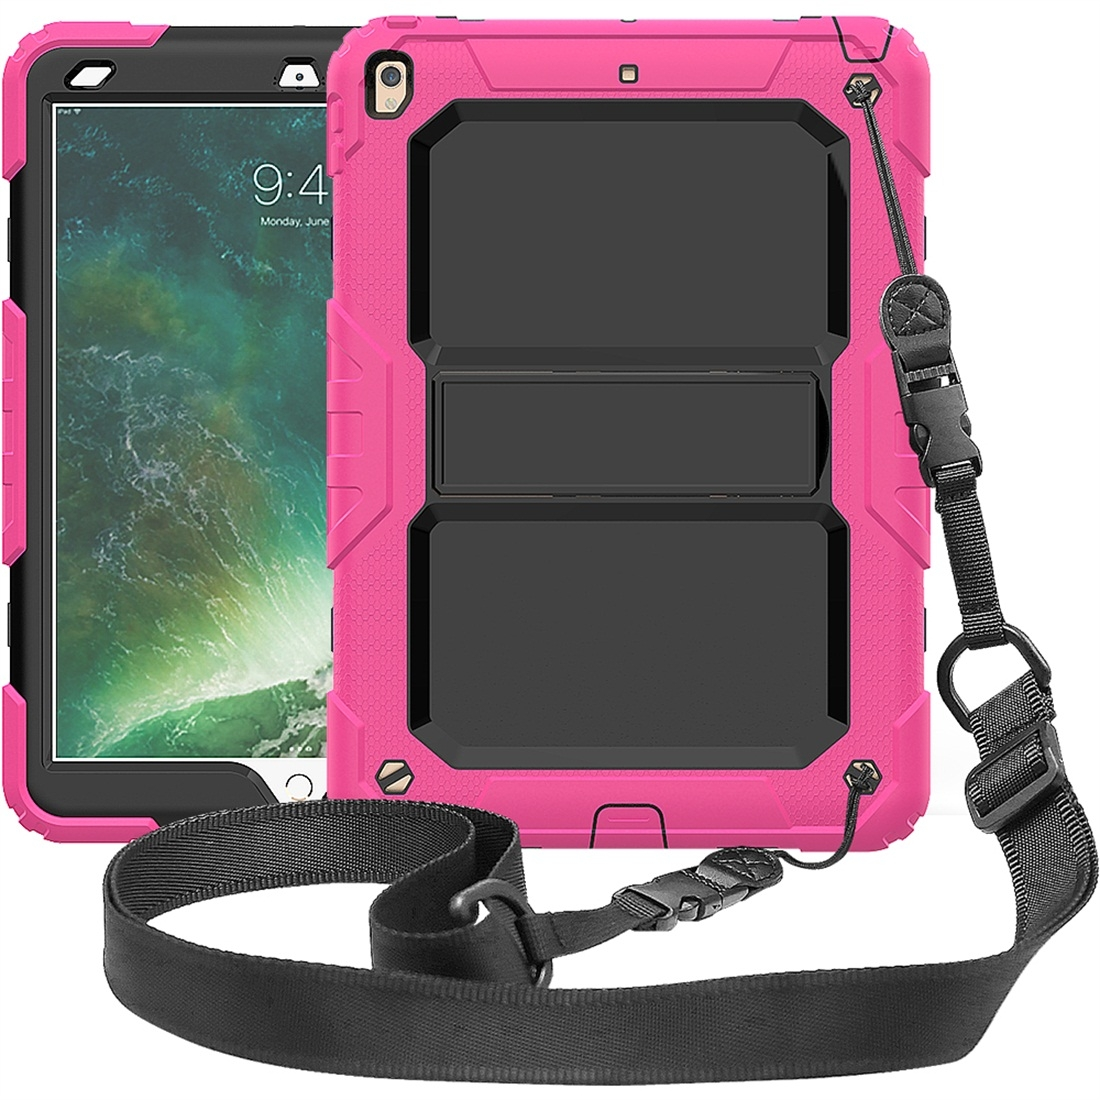 Shockproof  Protective And Durable iPad Air Case (10.5 Inch), with Shoulder Strap (Rose Red)